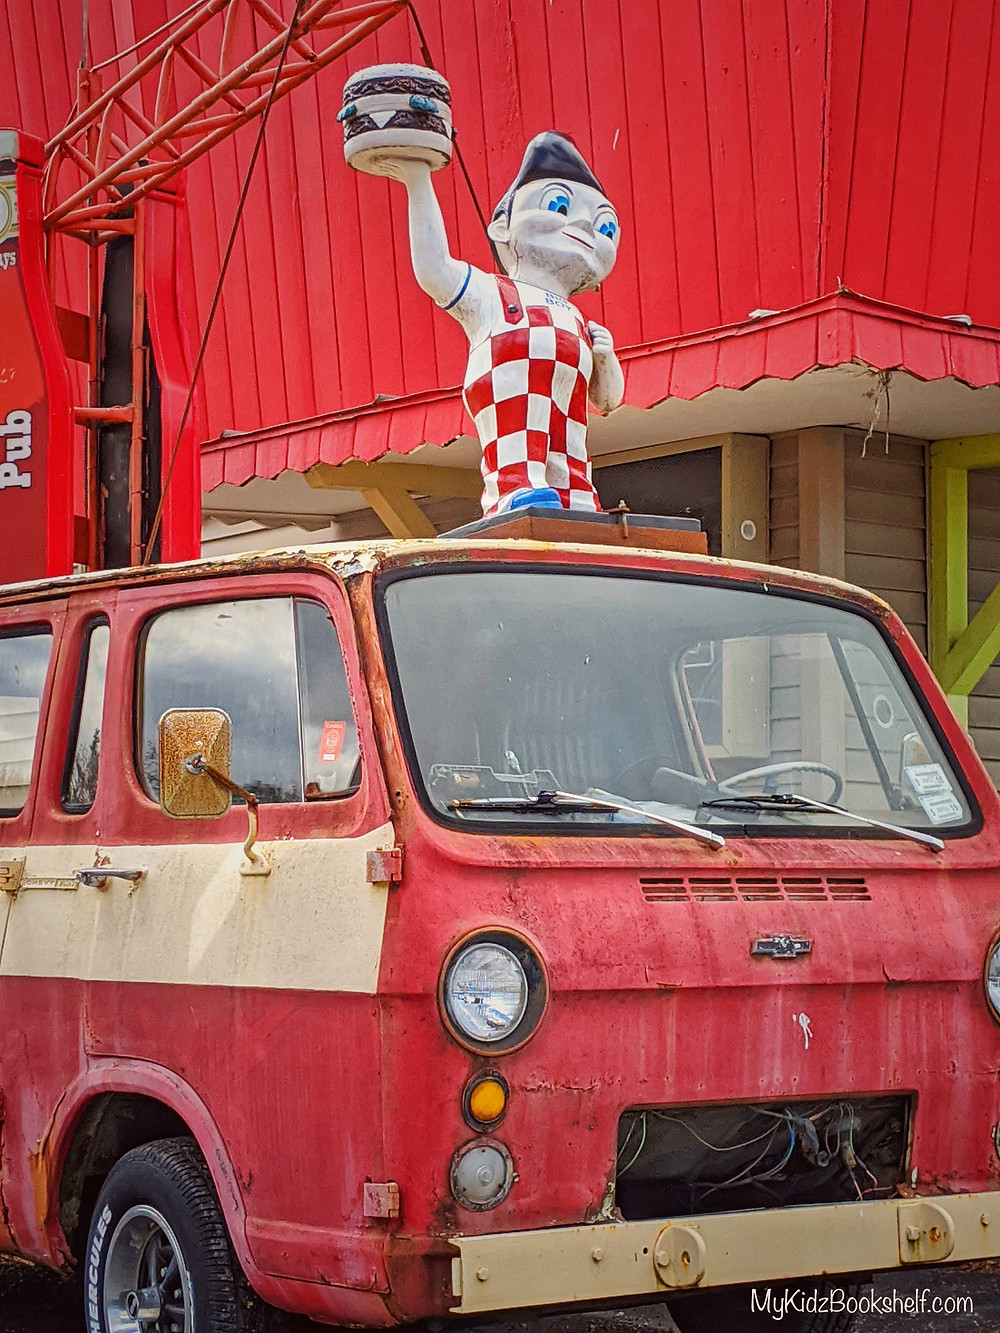 Currently Bookmarked old red van with vintage statue of boy in checked overalls holding a double burger